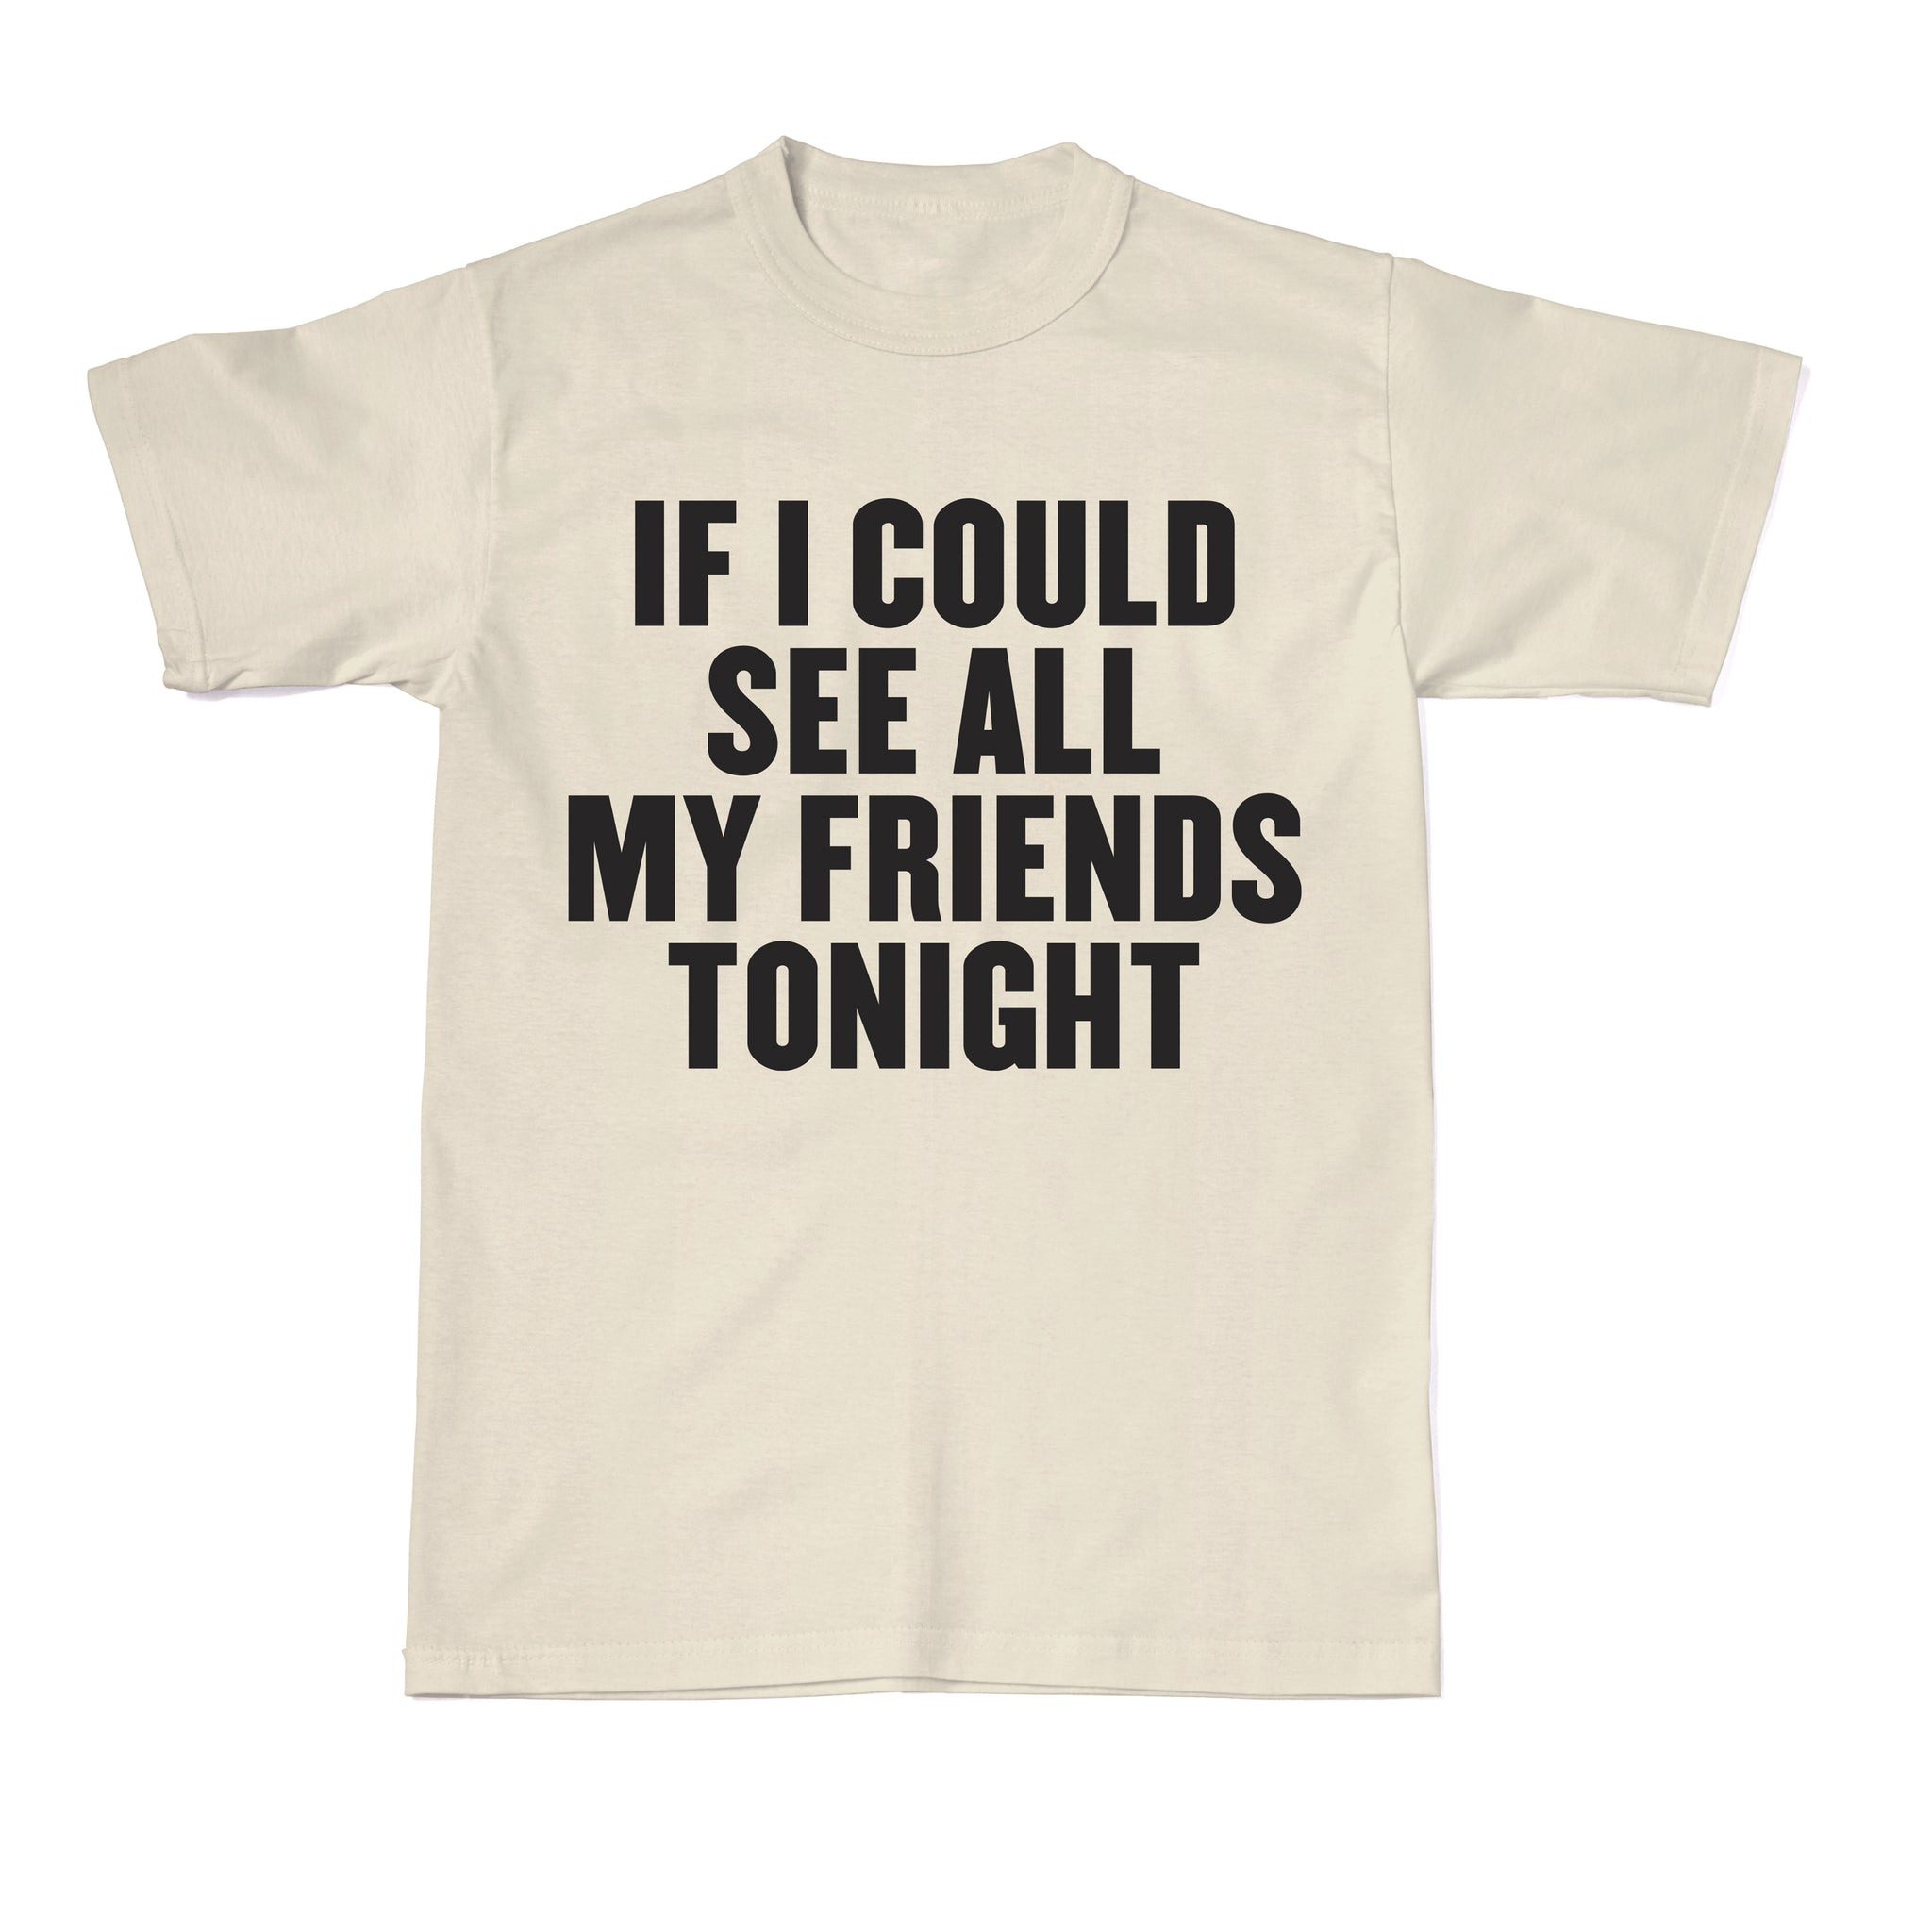 All My Friends - Short Sleeve T-Shirt